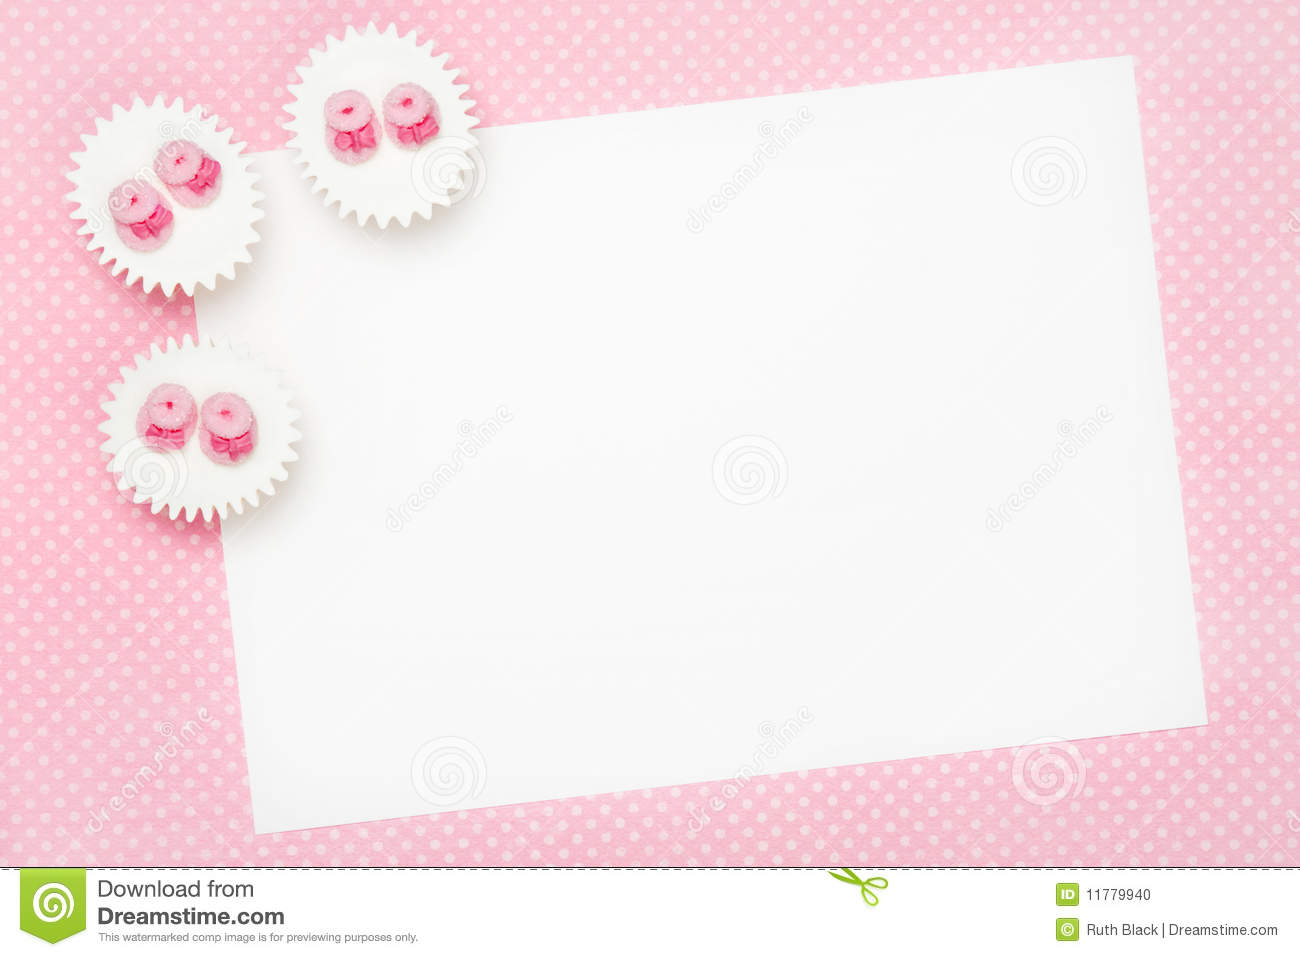 Blank baby shower invitation stock photo image of christening download blank baby shower invitation stock photo image of christening baby 11779940 filmwisefo